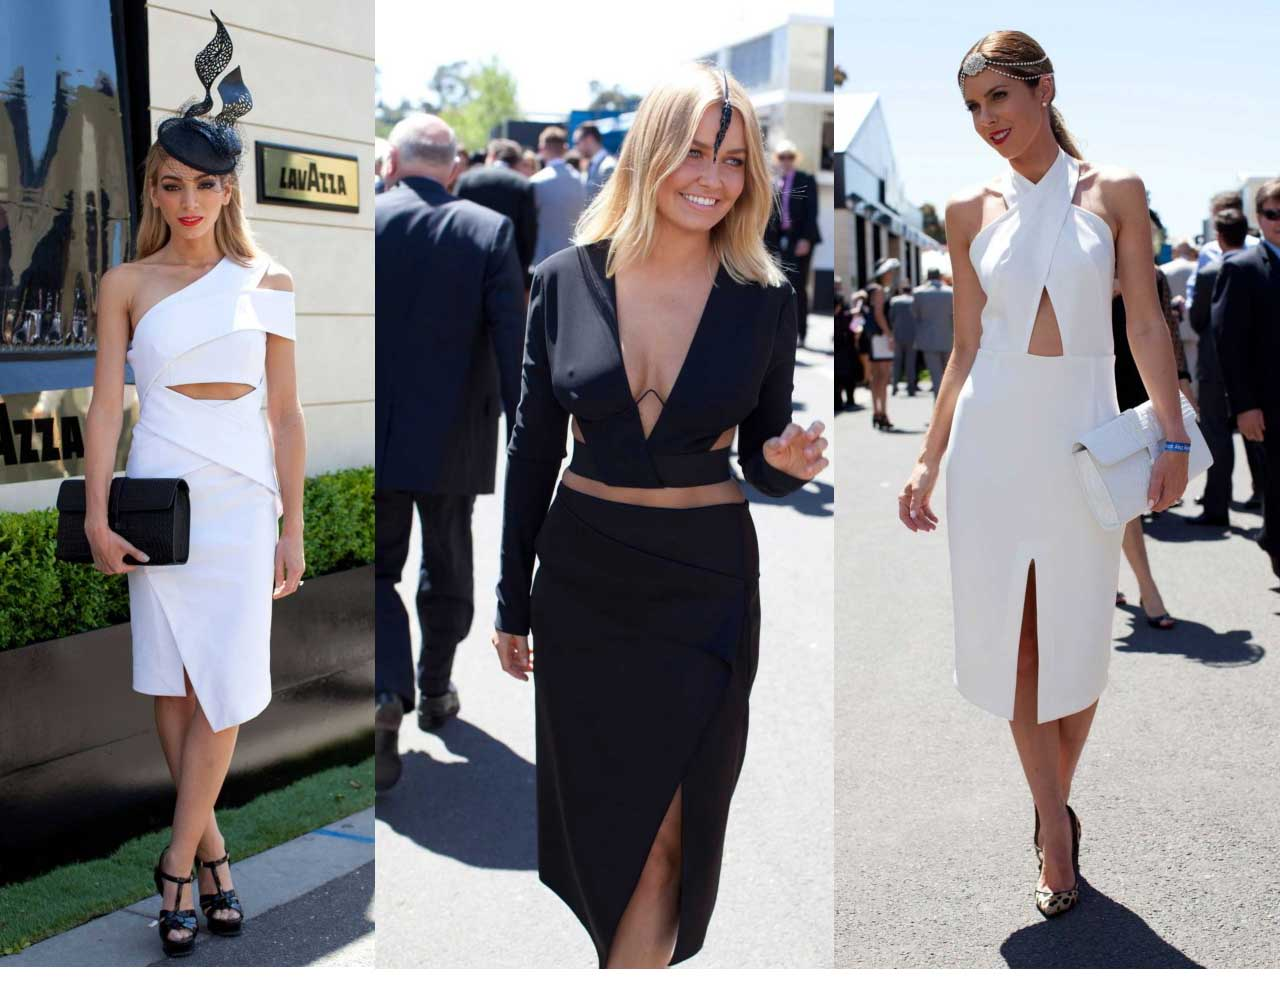 Inappropriate midriff-bearing looks featured in vogue.com.au's Derby Day Street Style section.